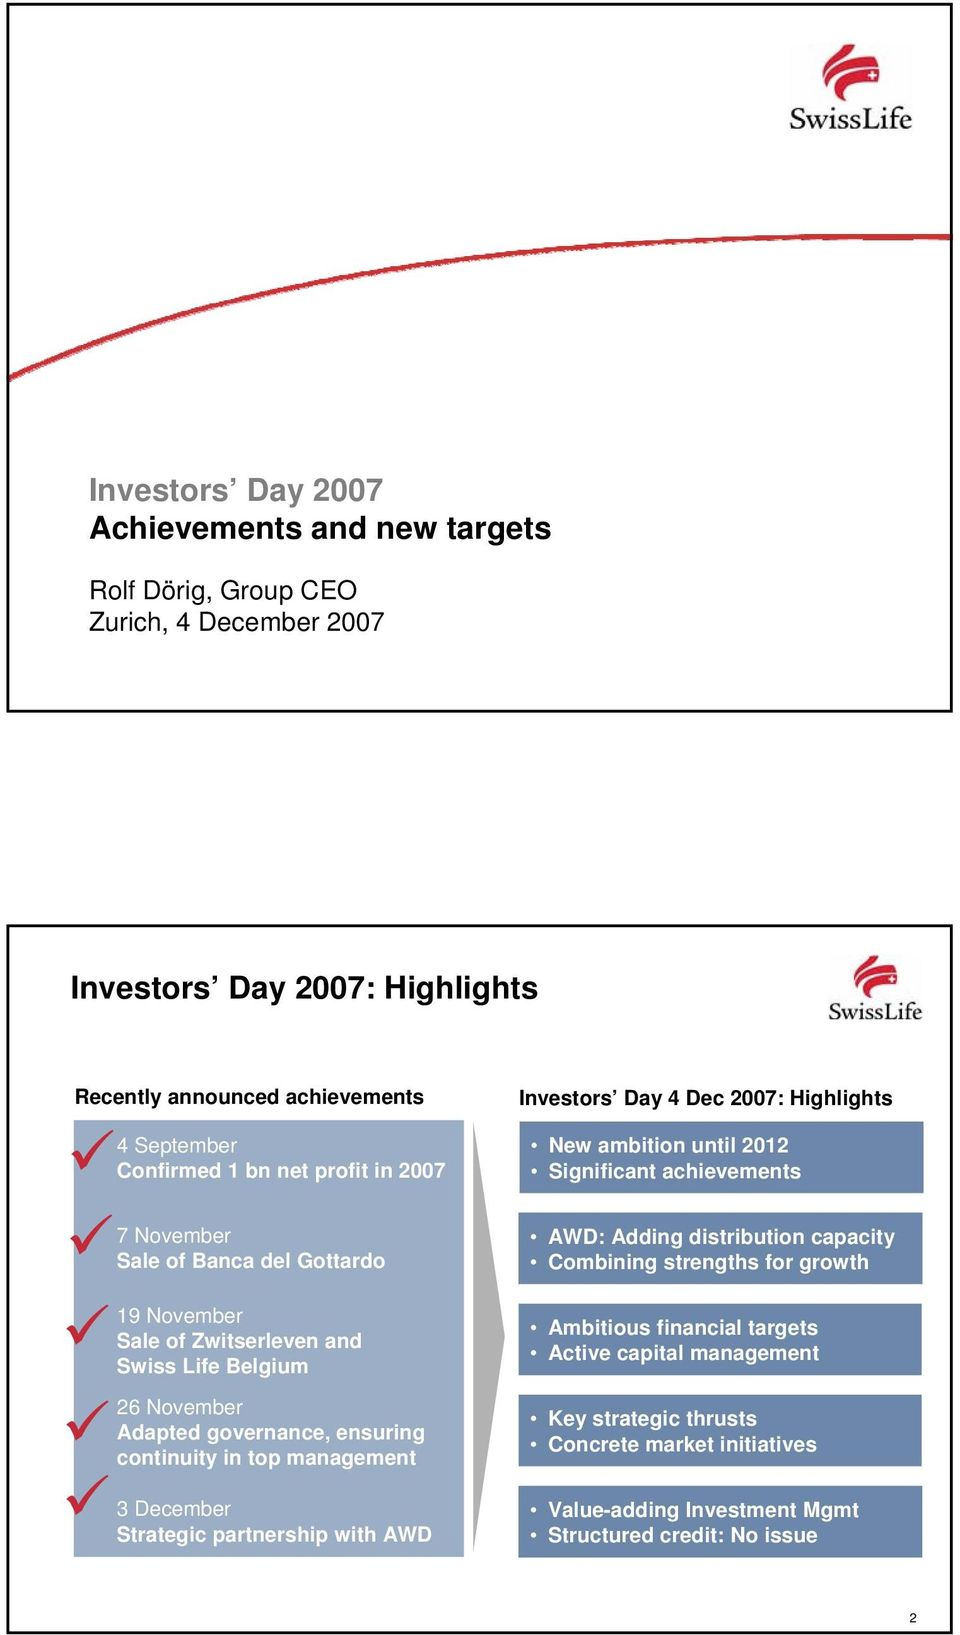 management 3 December Strategic partnership with AWD Investors Day 4 Dec 2007: Highlights New ambition until 2012 Significant achievements AWD: Adding distribution capacity